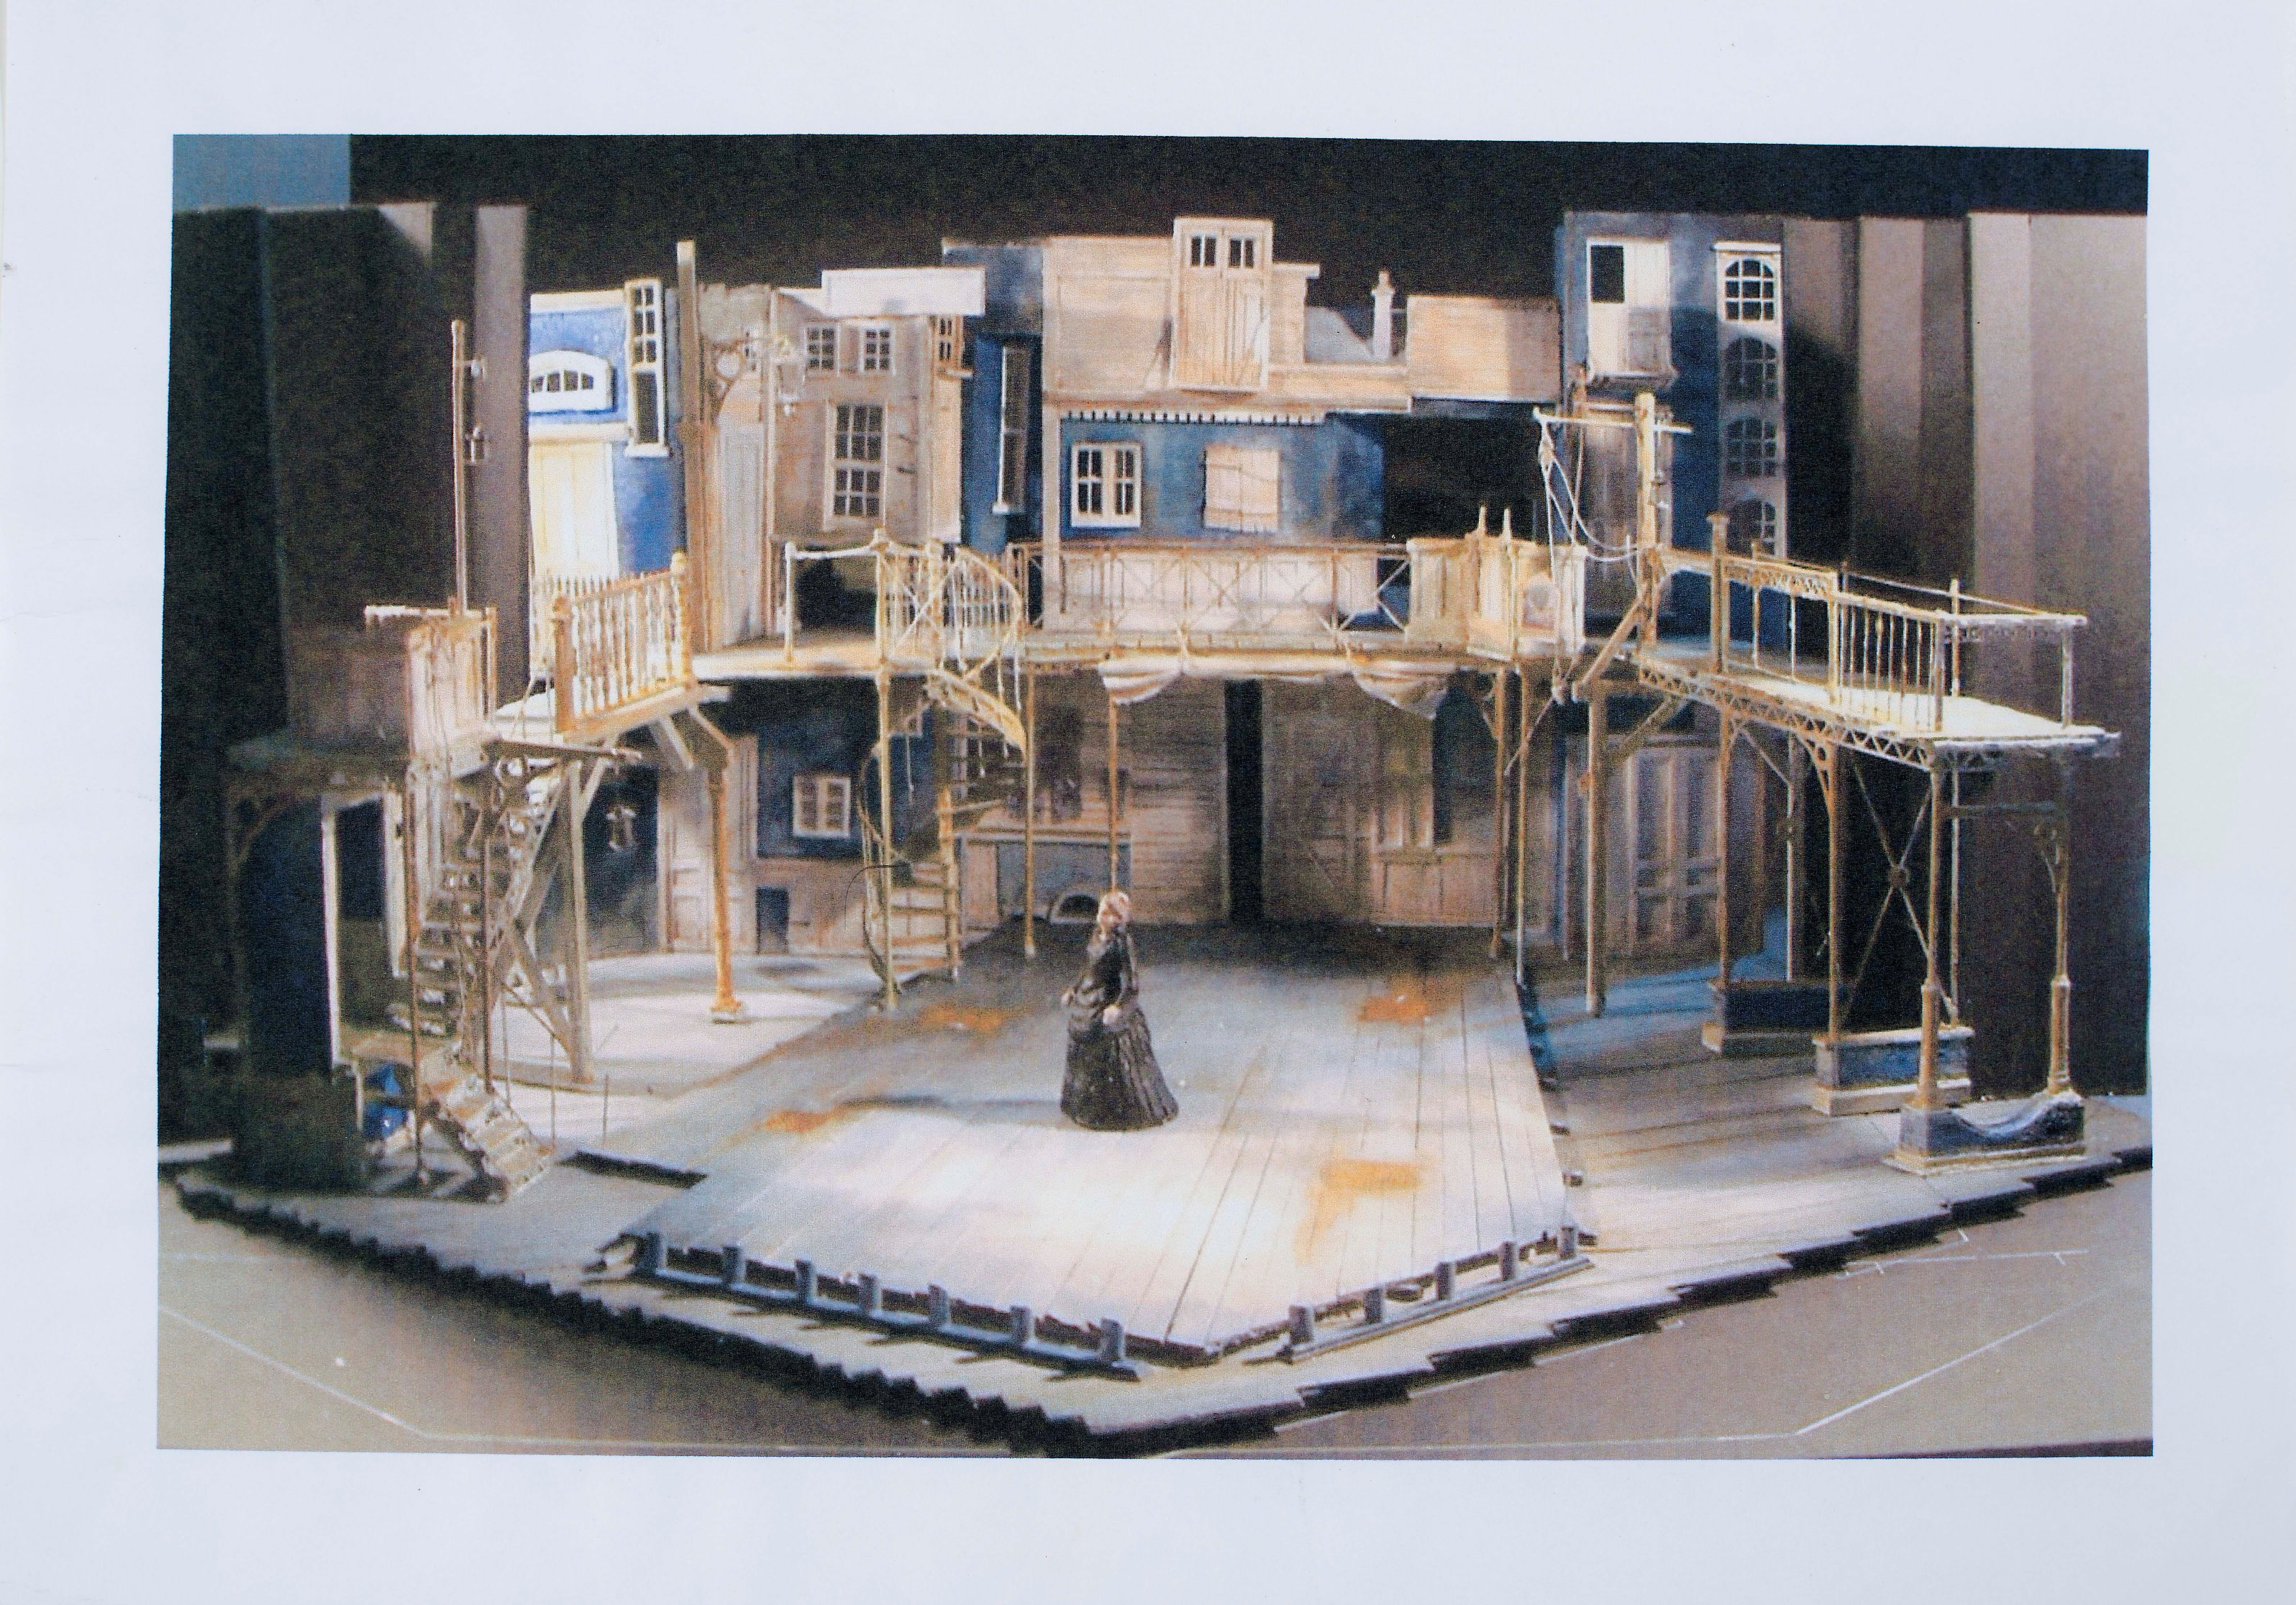 Photograph set model box Nicholas Nickleby - Simon Higlett - 2006 - CFT WSRO - low res